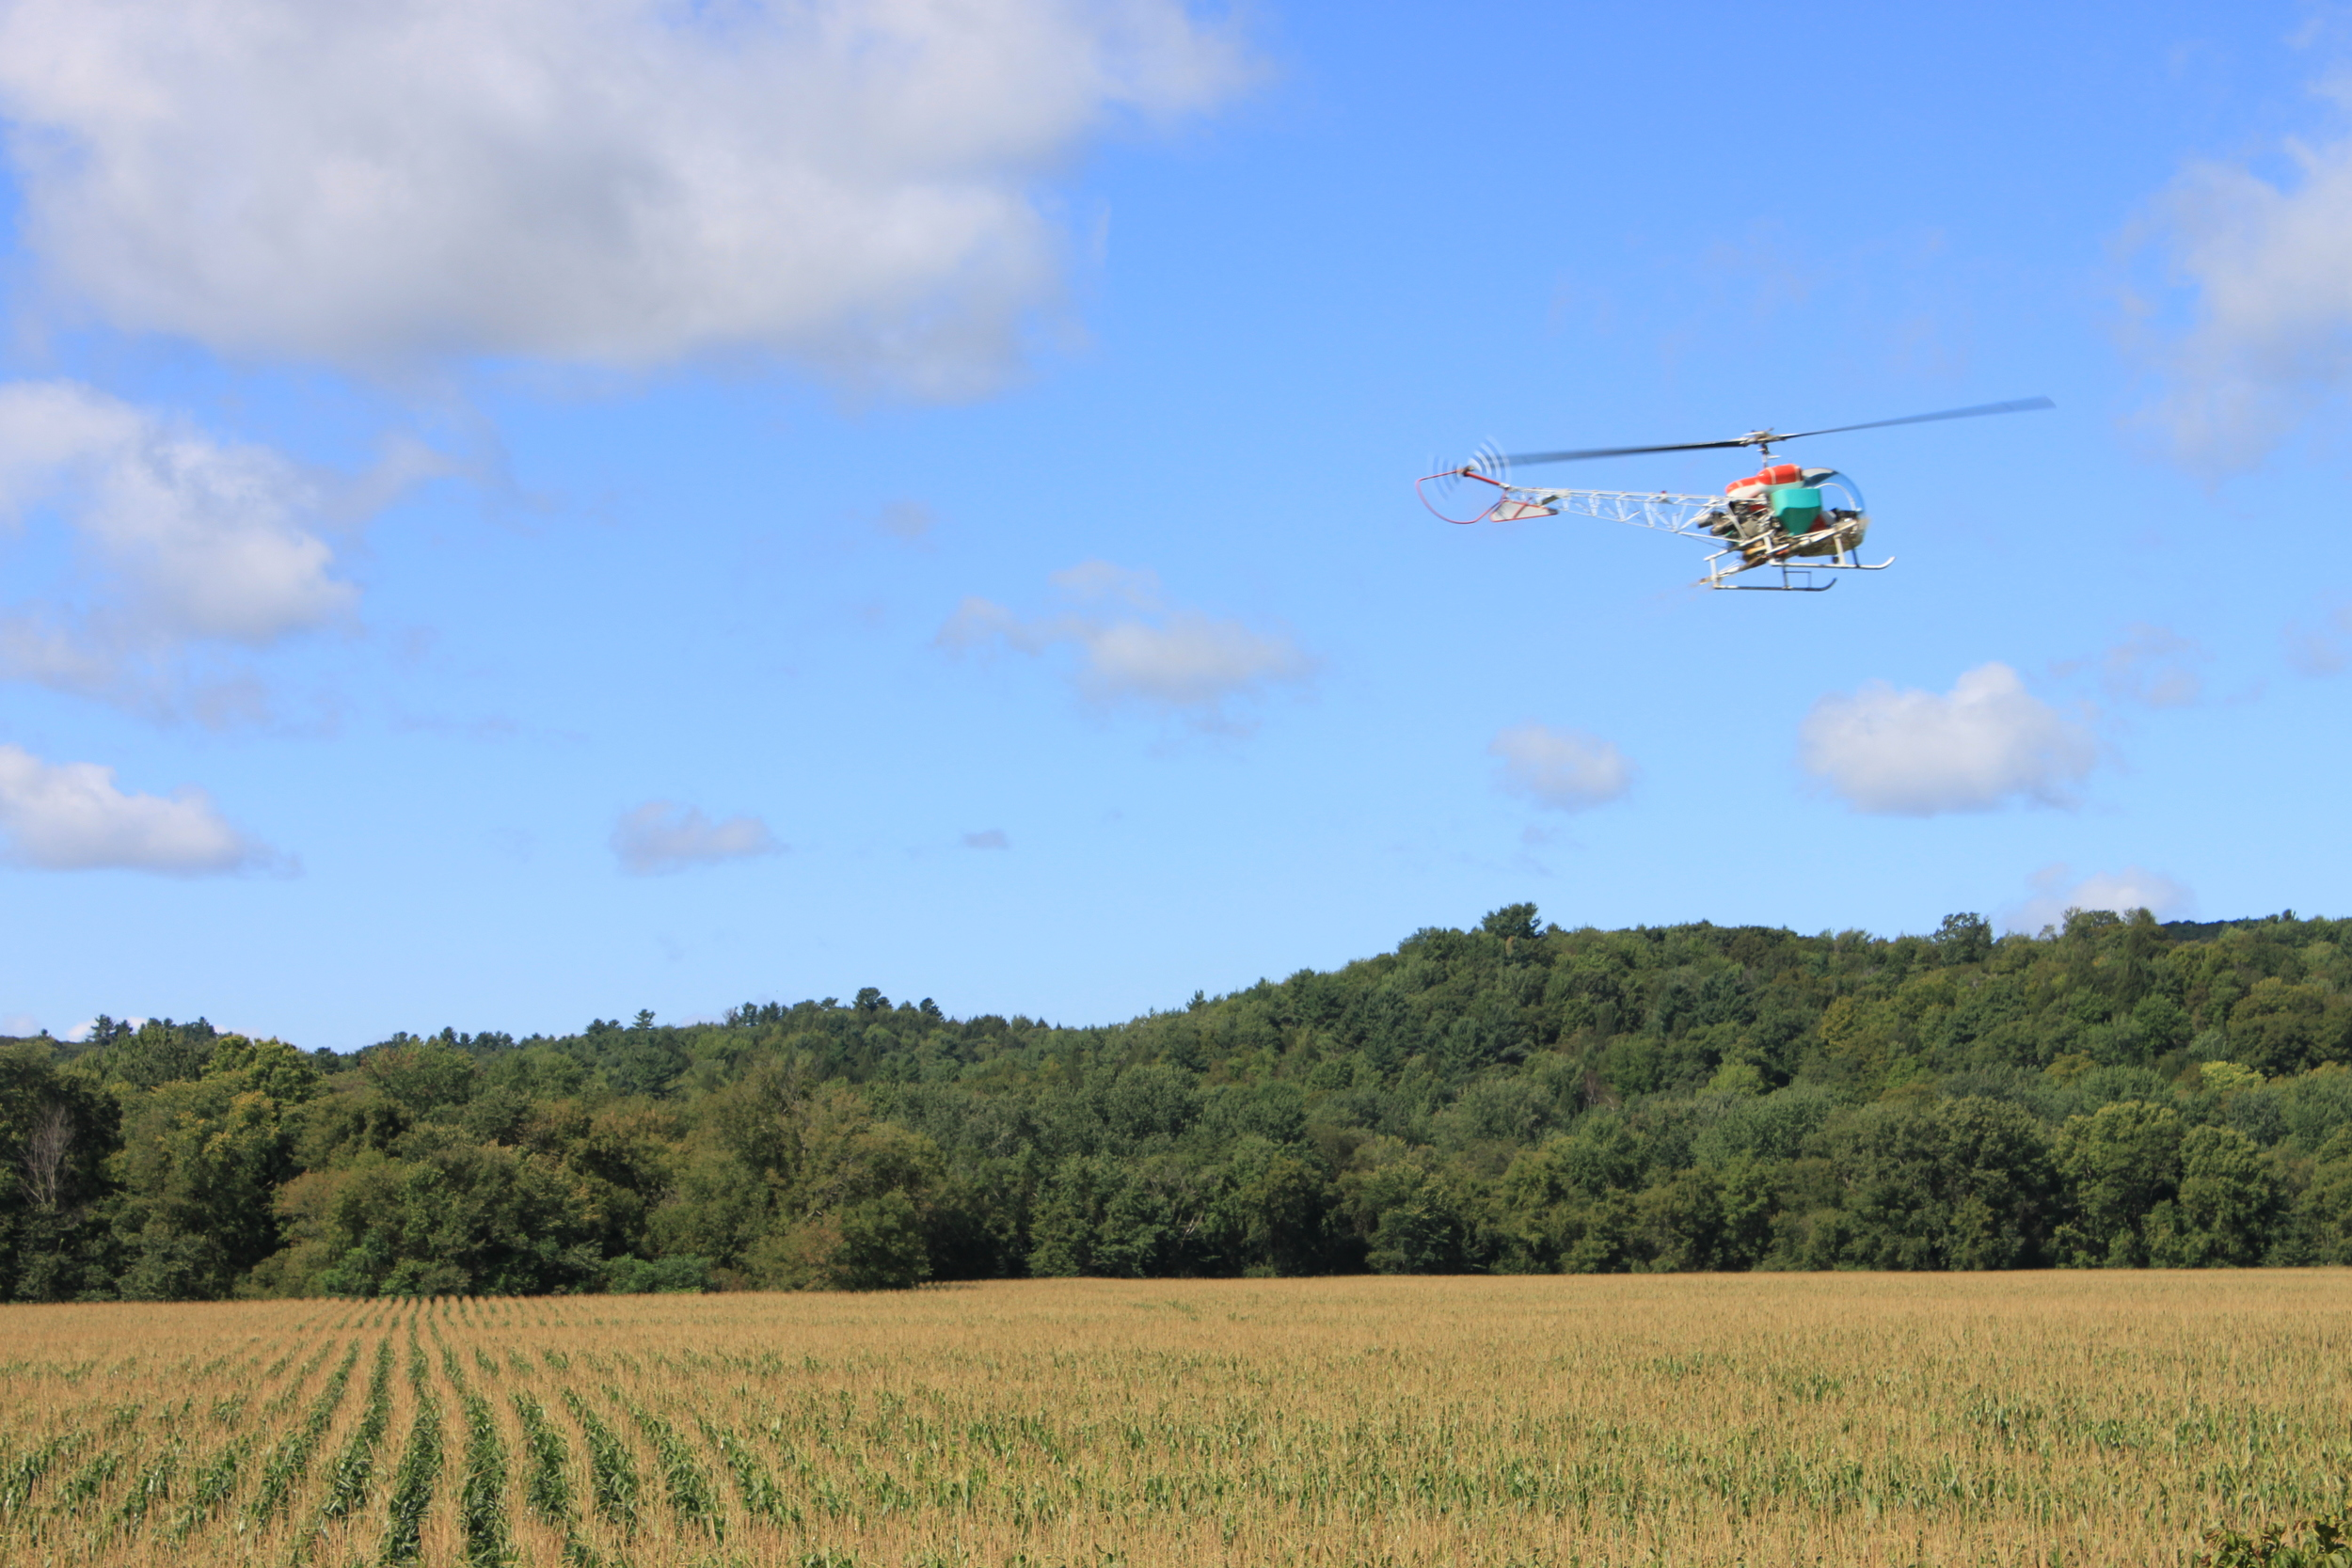 A helicopter spreads winter rye seed down over a corn field. When the corn is harvested, the rye will remain, enriching the soil and preventing erosion.